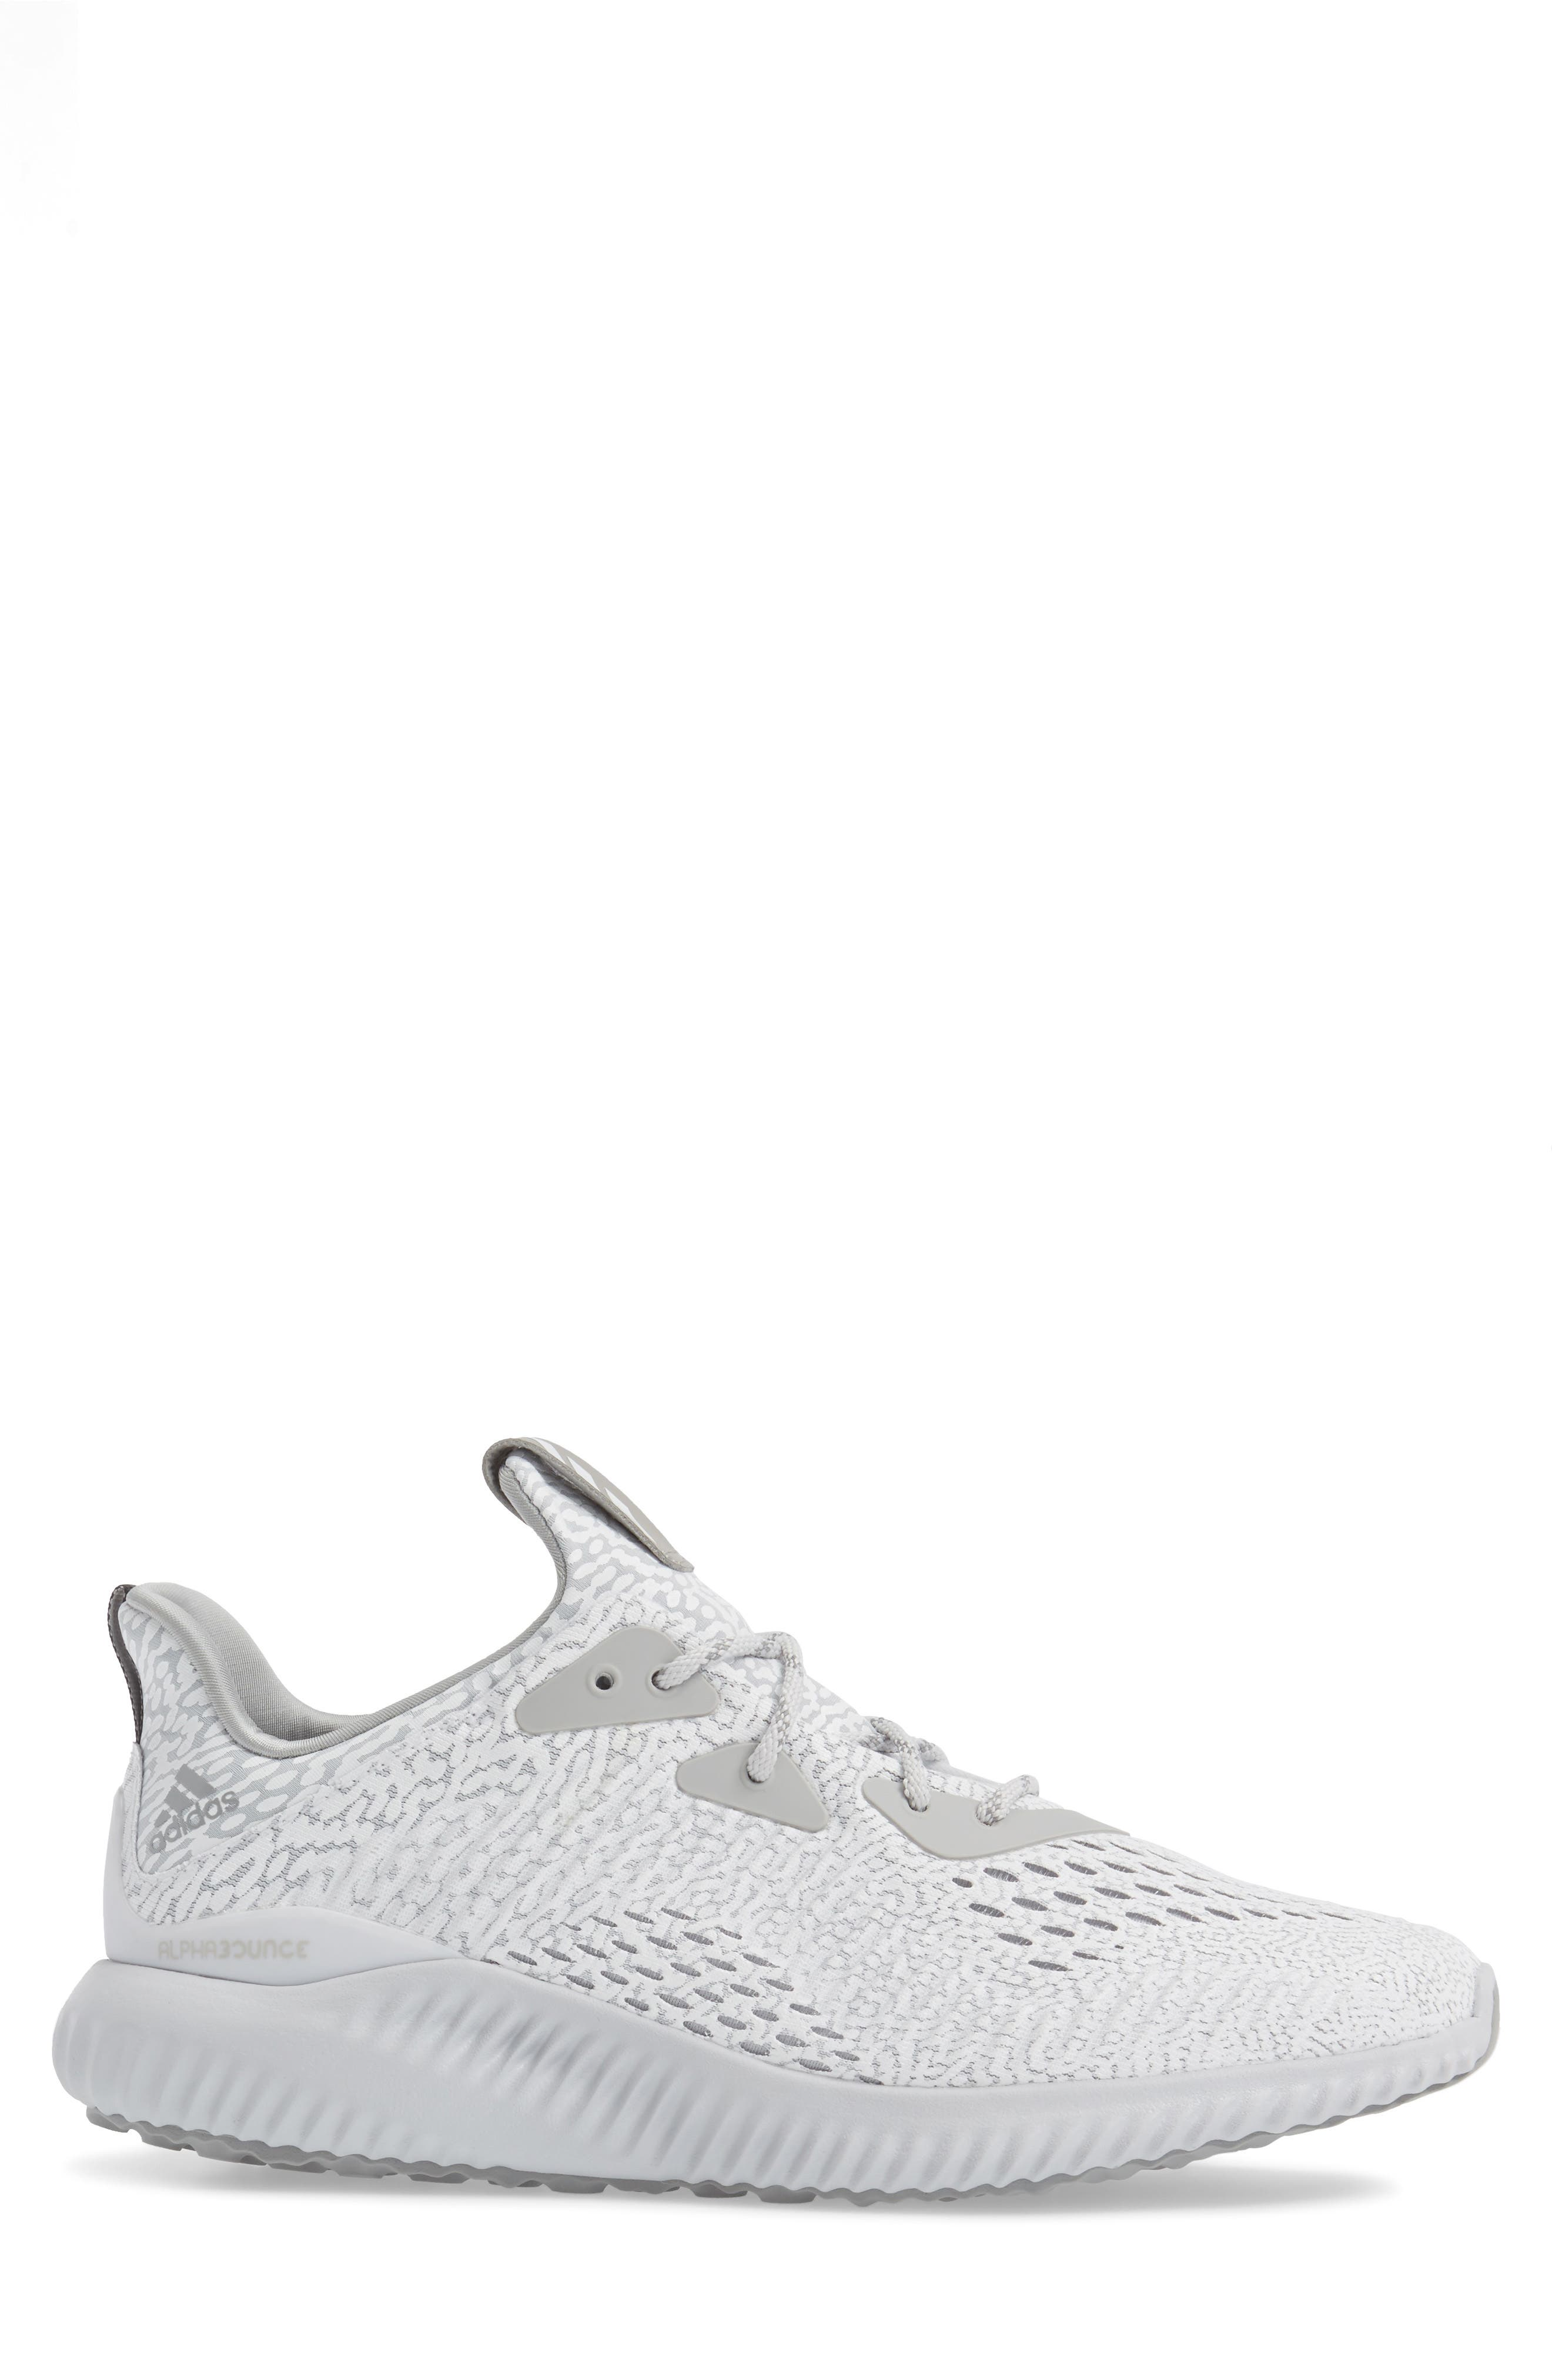 AlphaBounce Aramis Sneaker,                             Alternate thumbnail 3, color,                             Clear Grey/Core Black